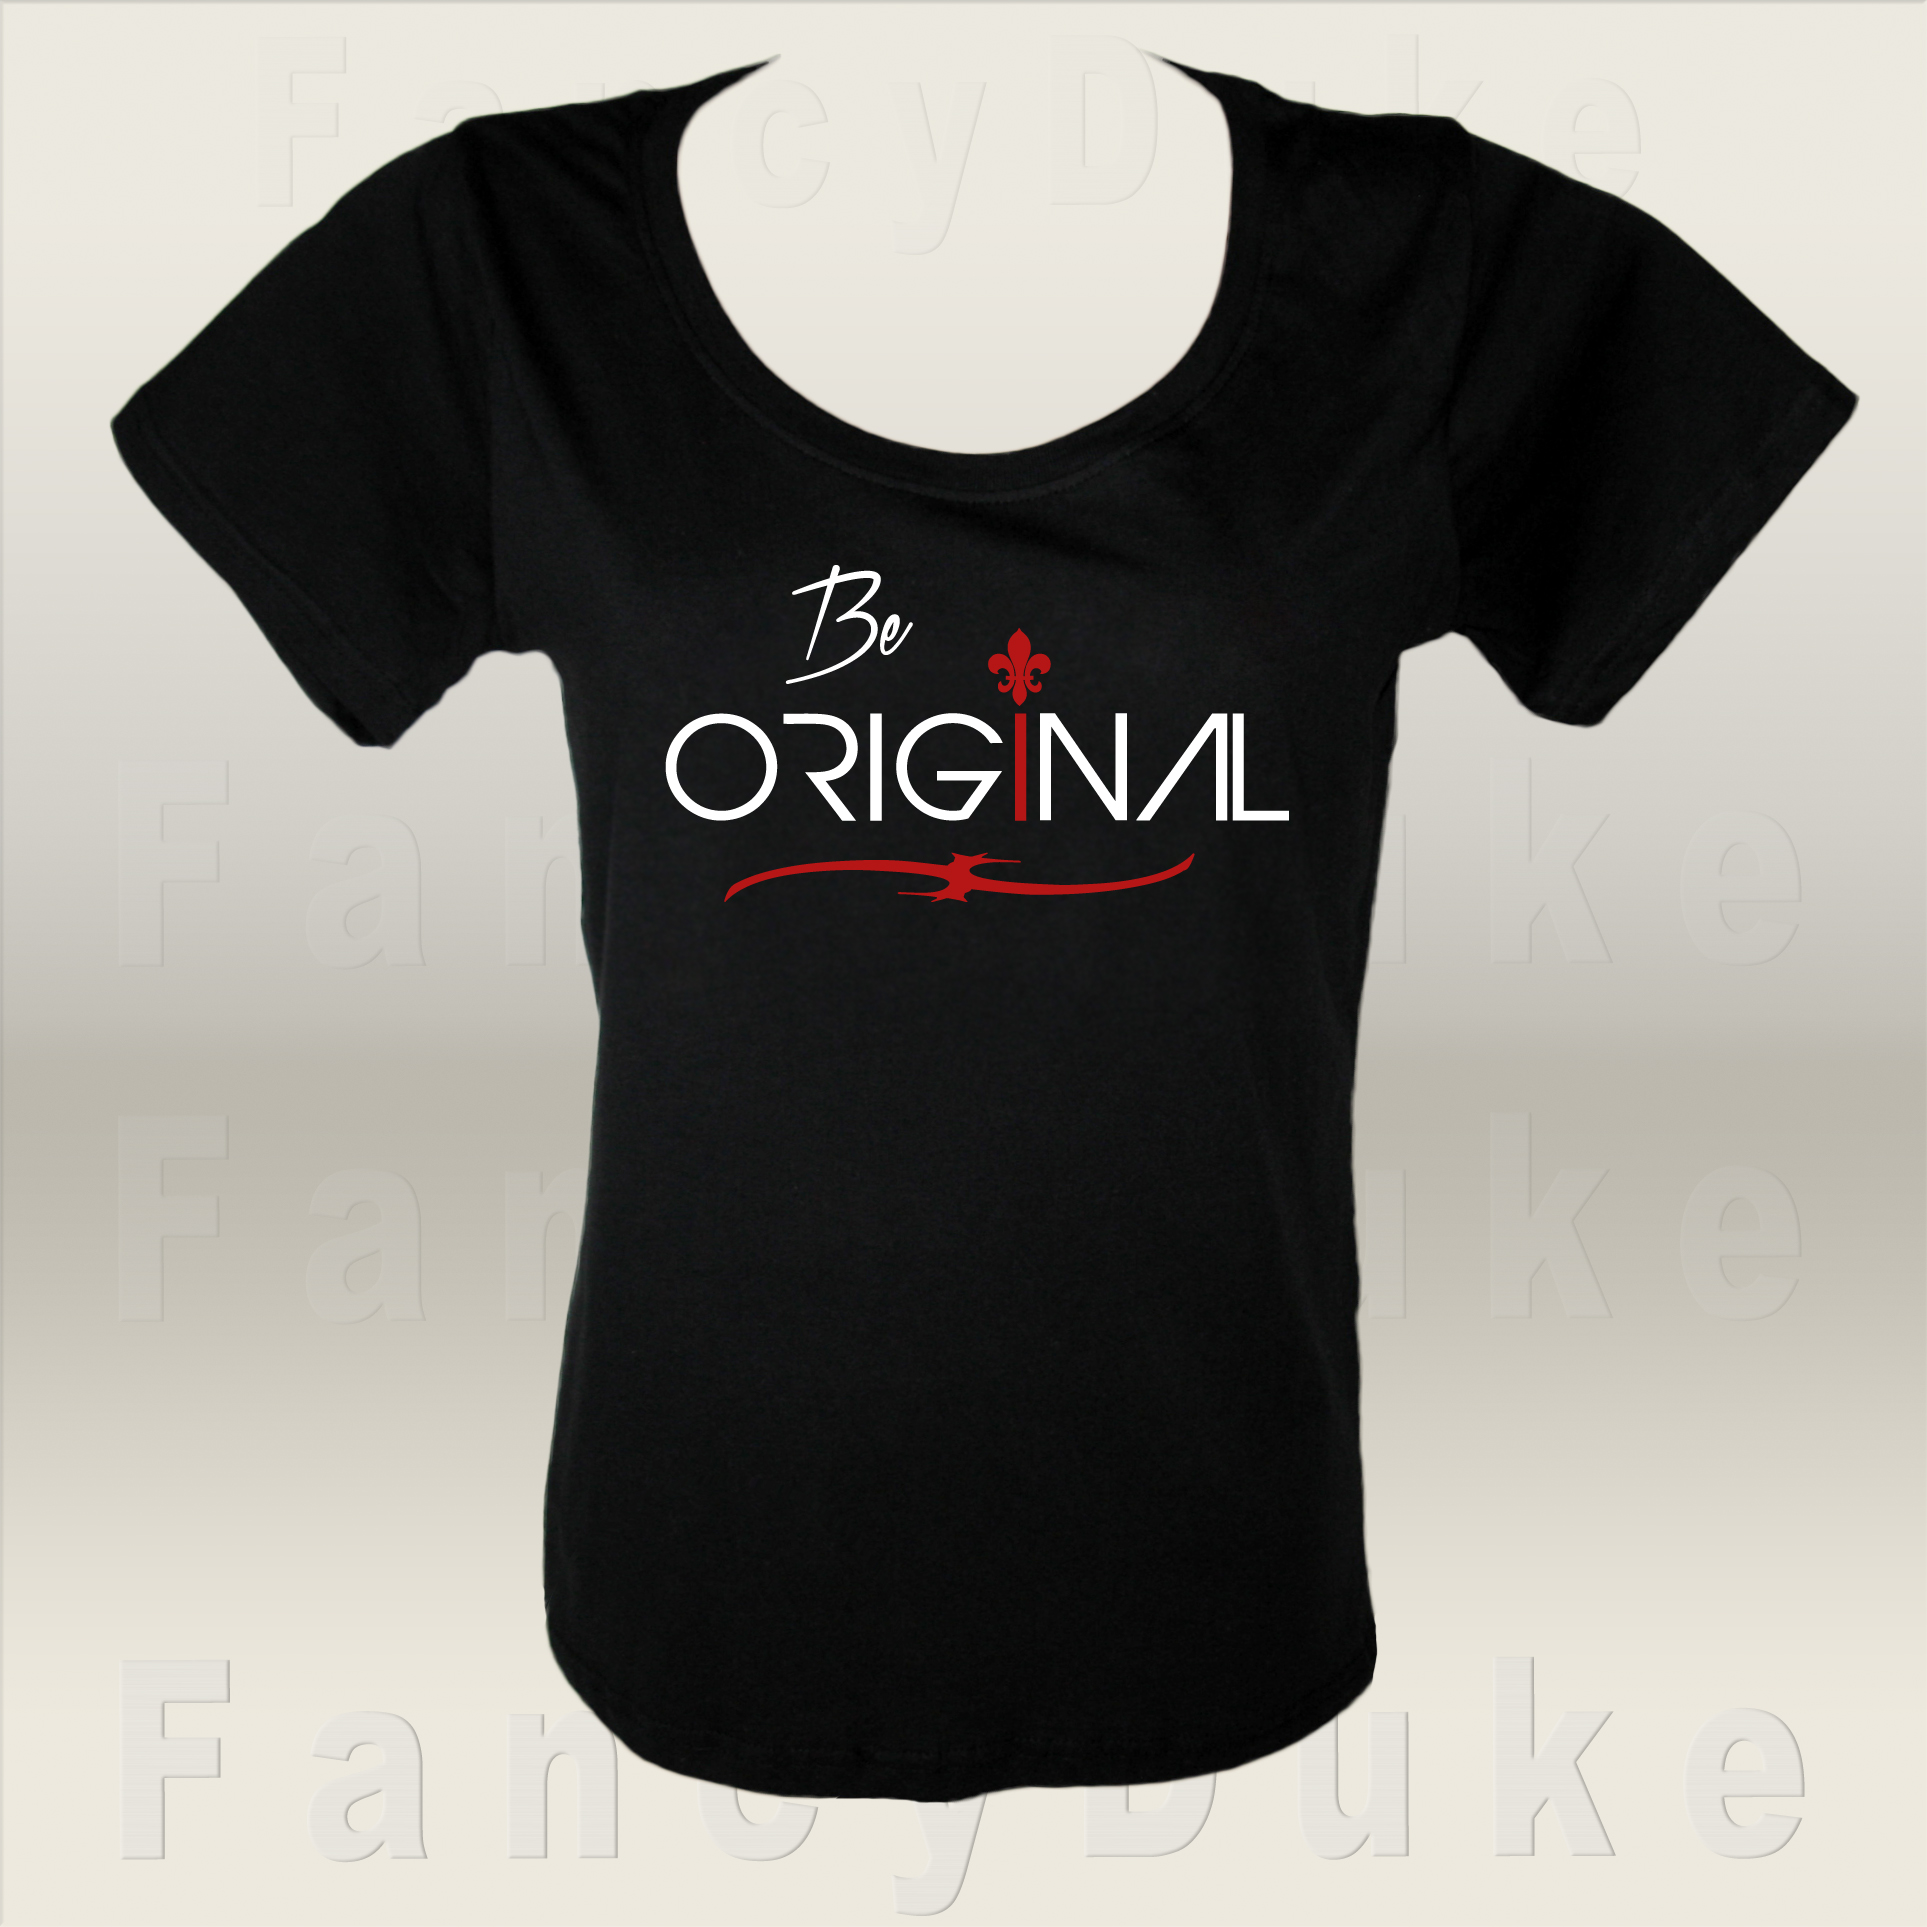 Be Original T-Shirt Design by Svetlana